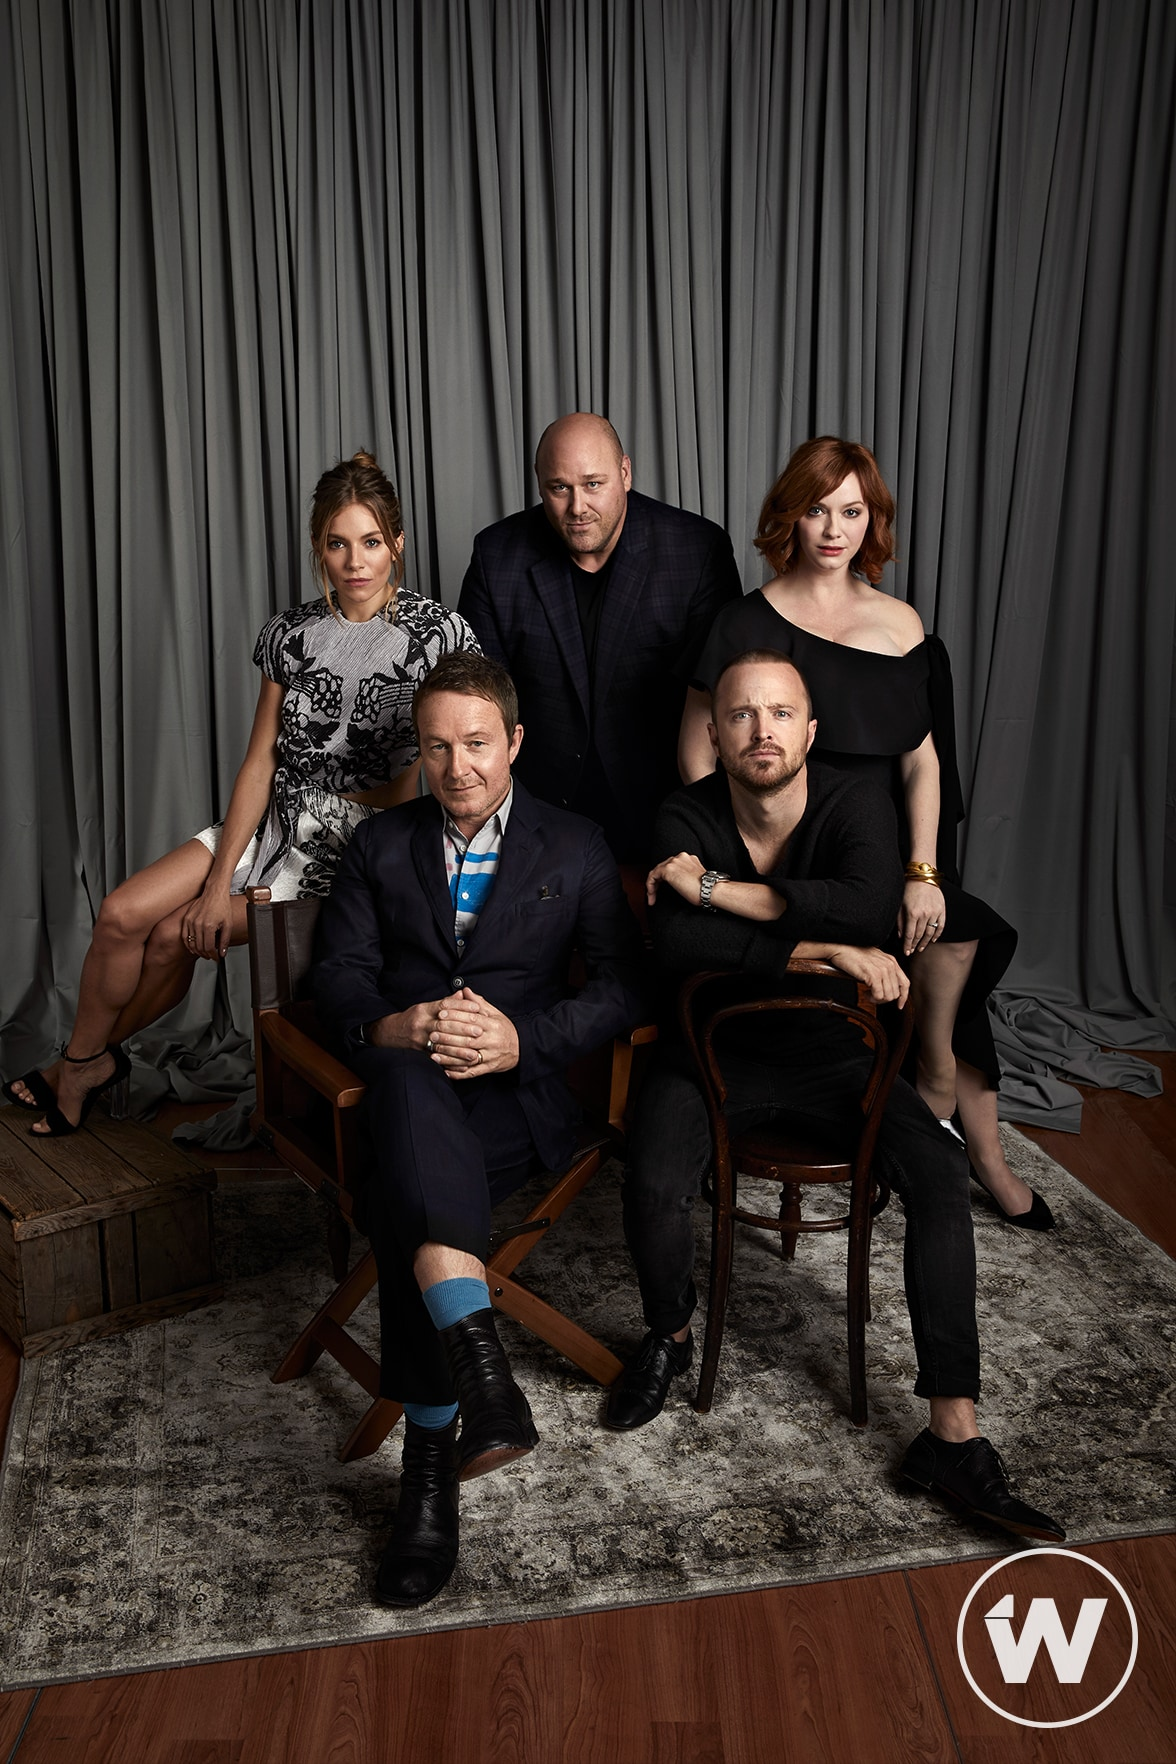 Sienna Miller, Jake Scott, Will Sasso, Aaron Paul, and Christina Hendricks, American Woman